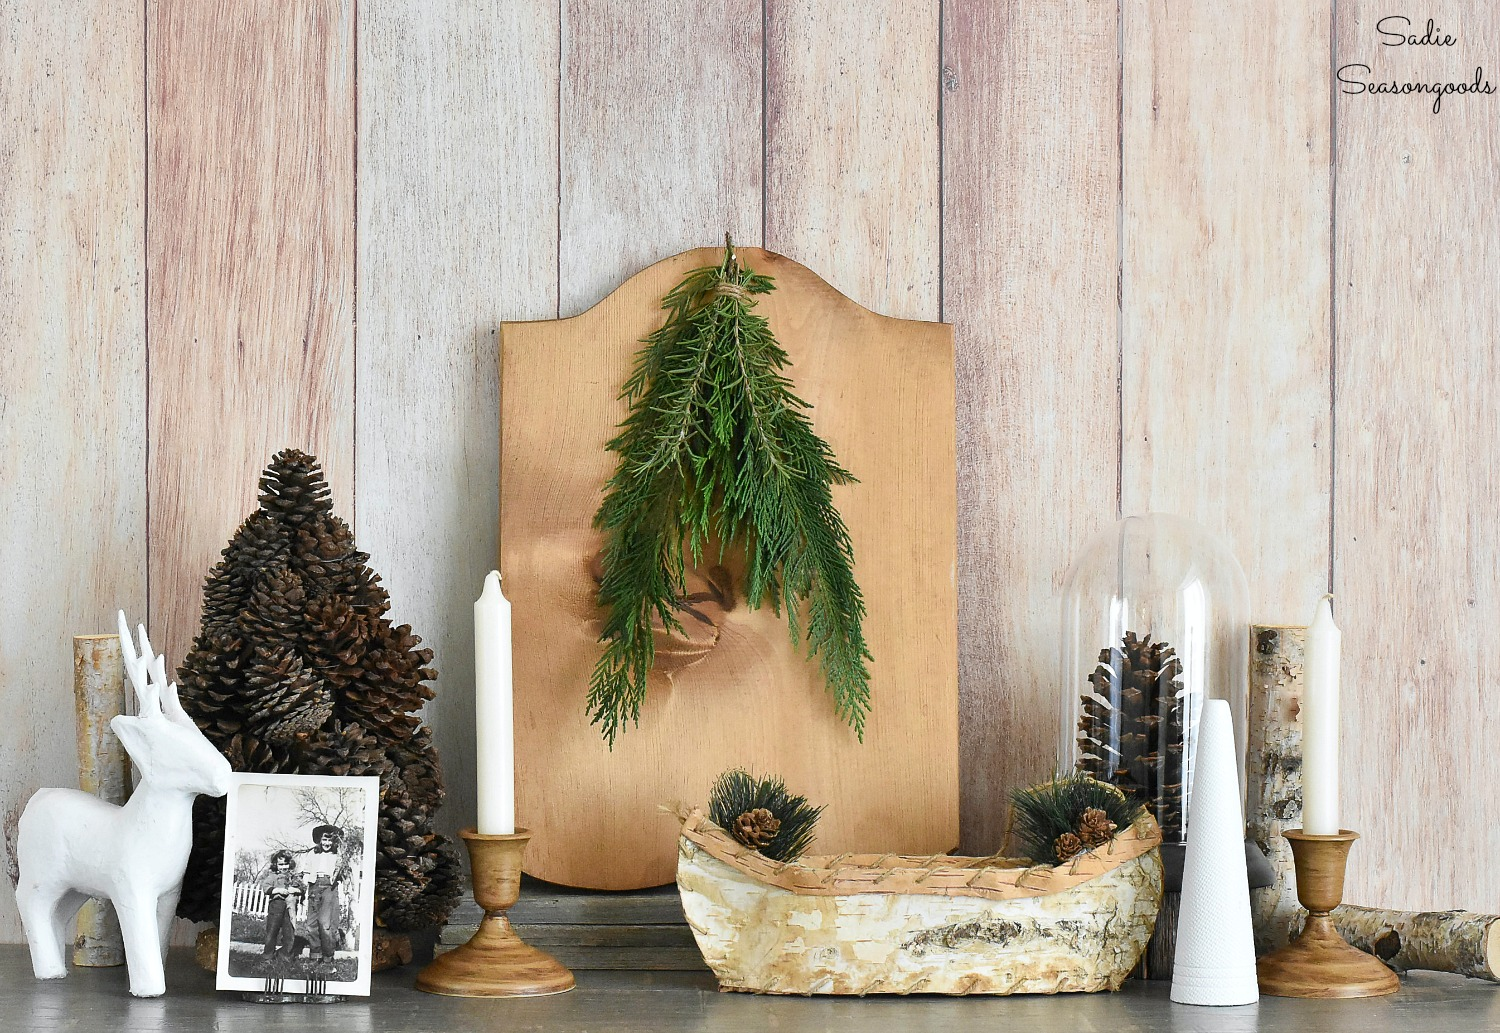 Lodge decor for a winter cabin by thrift shopping for rustic decor and upcycled crafts